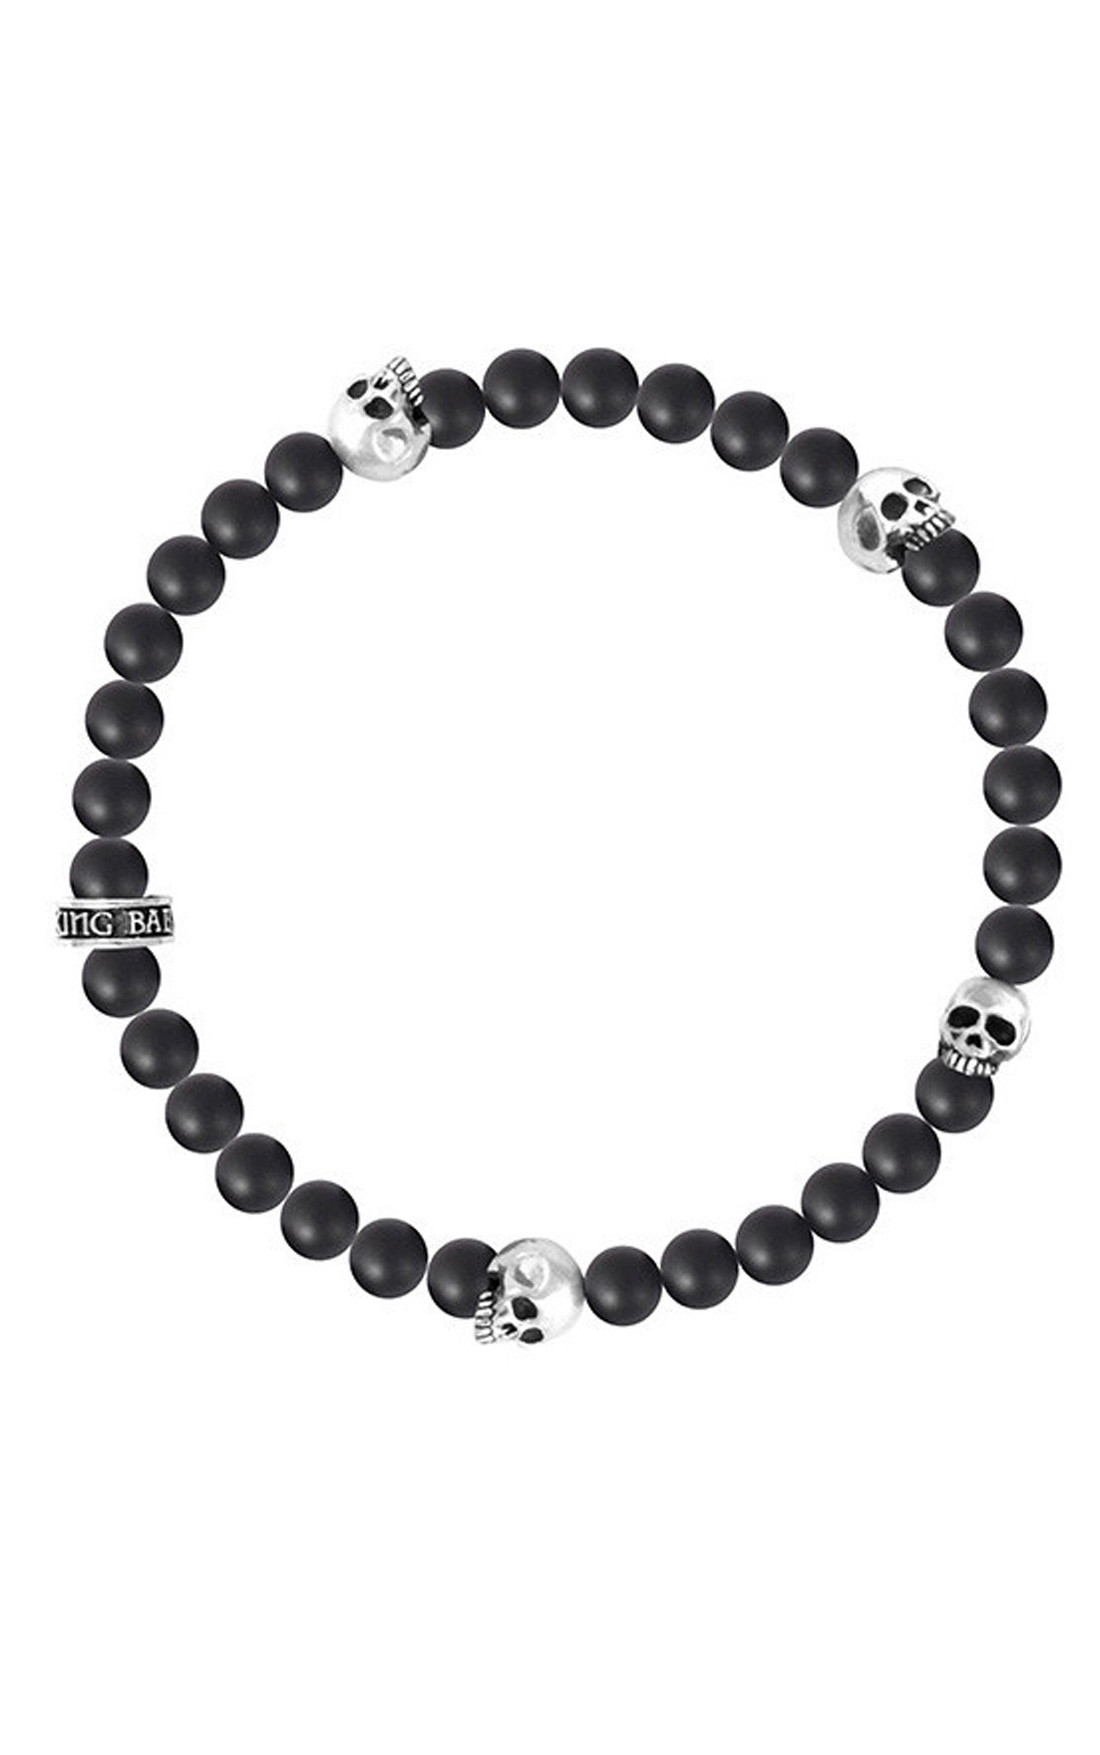 King Baby - 6mm Onyx Bead Bracelet with 4 Skulls (K40-5528-ONY)